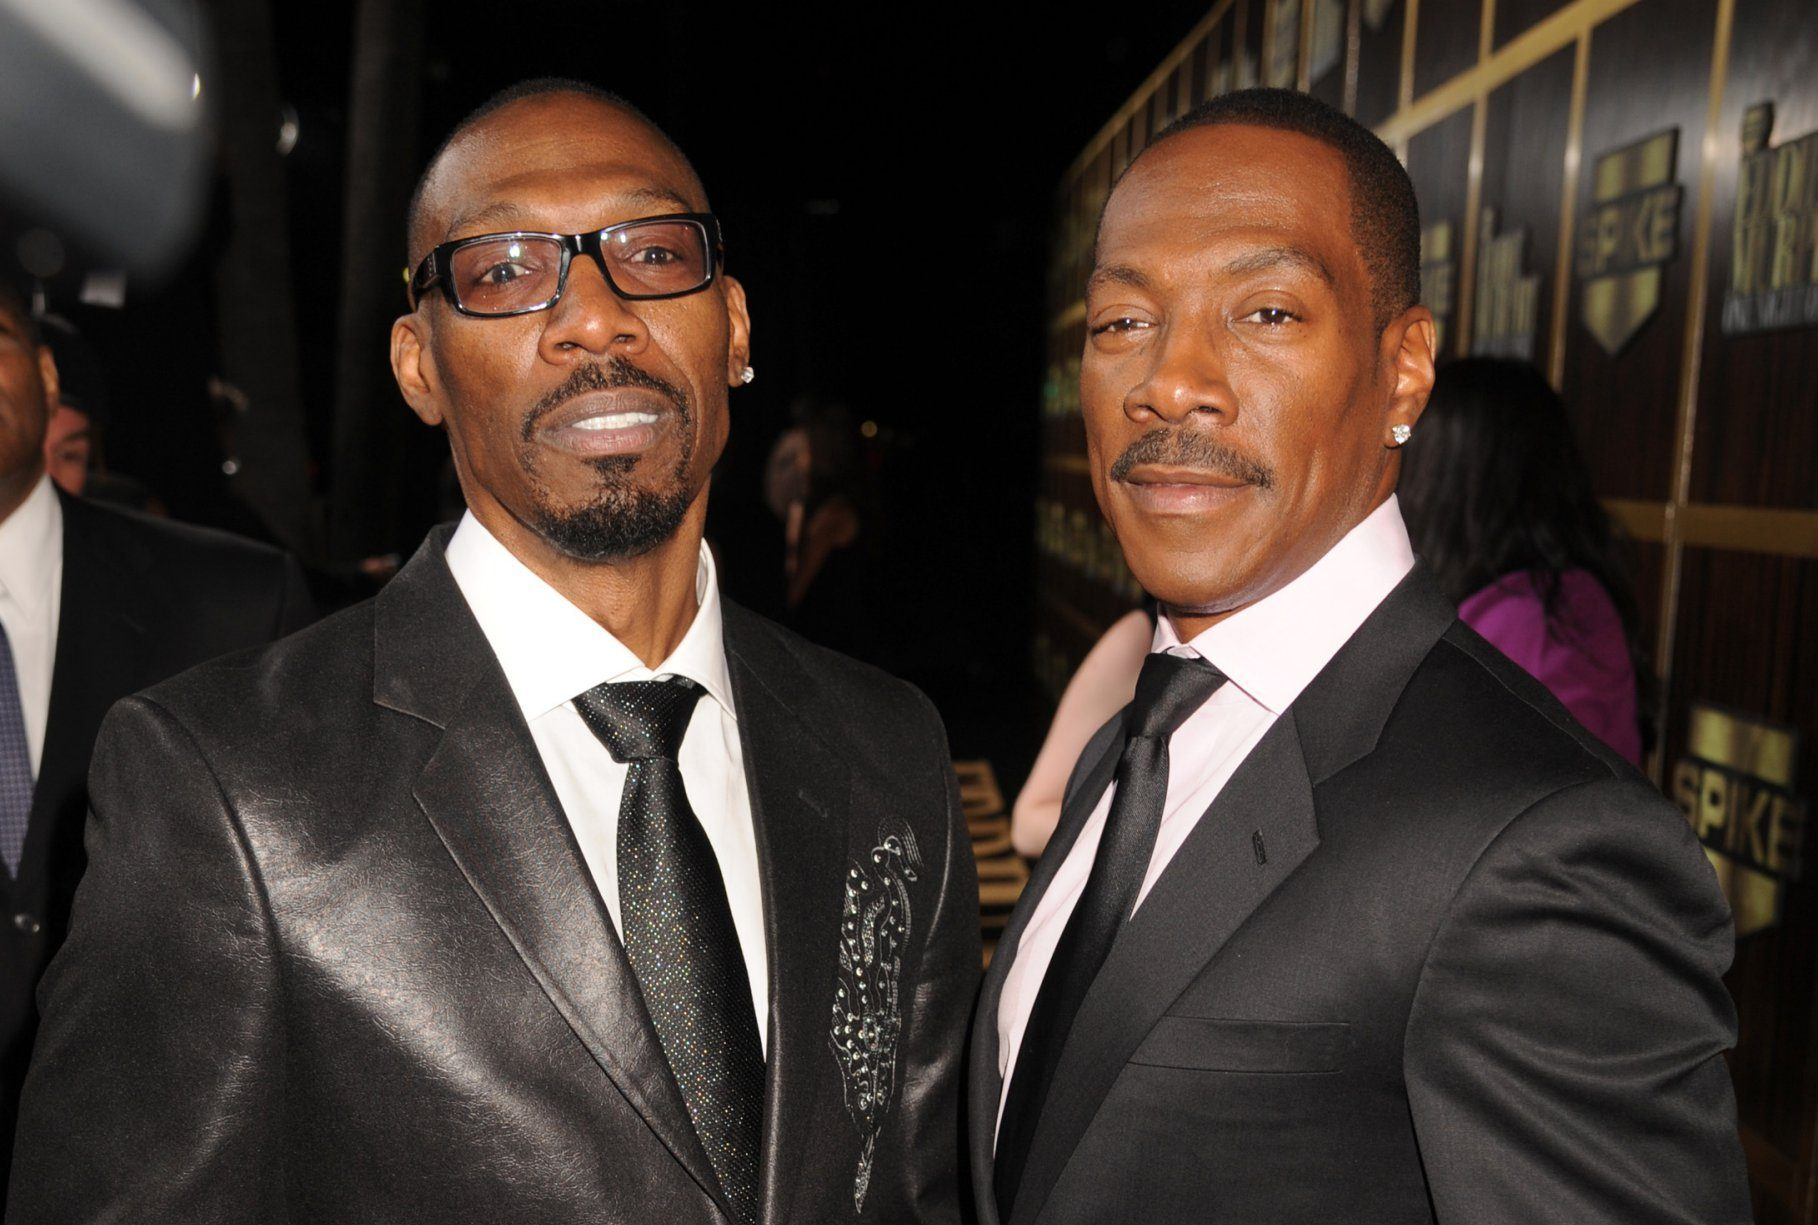 Eddie Murphy pays emotional tribute to his older brother Charlie following his tragic death from leukaemia